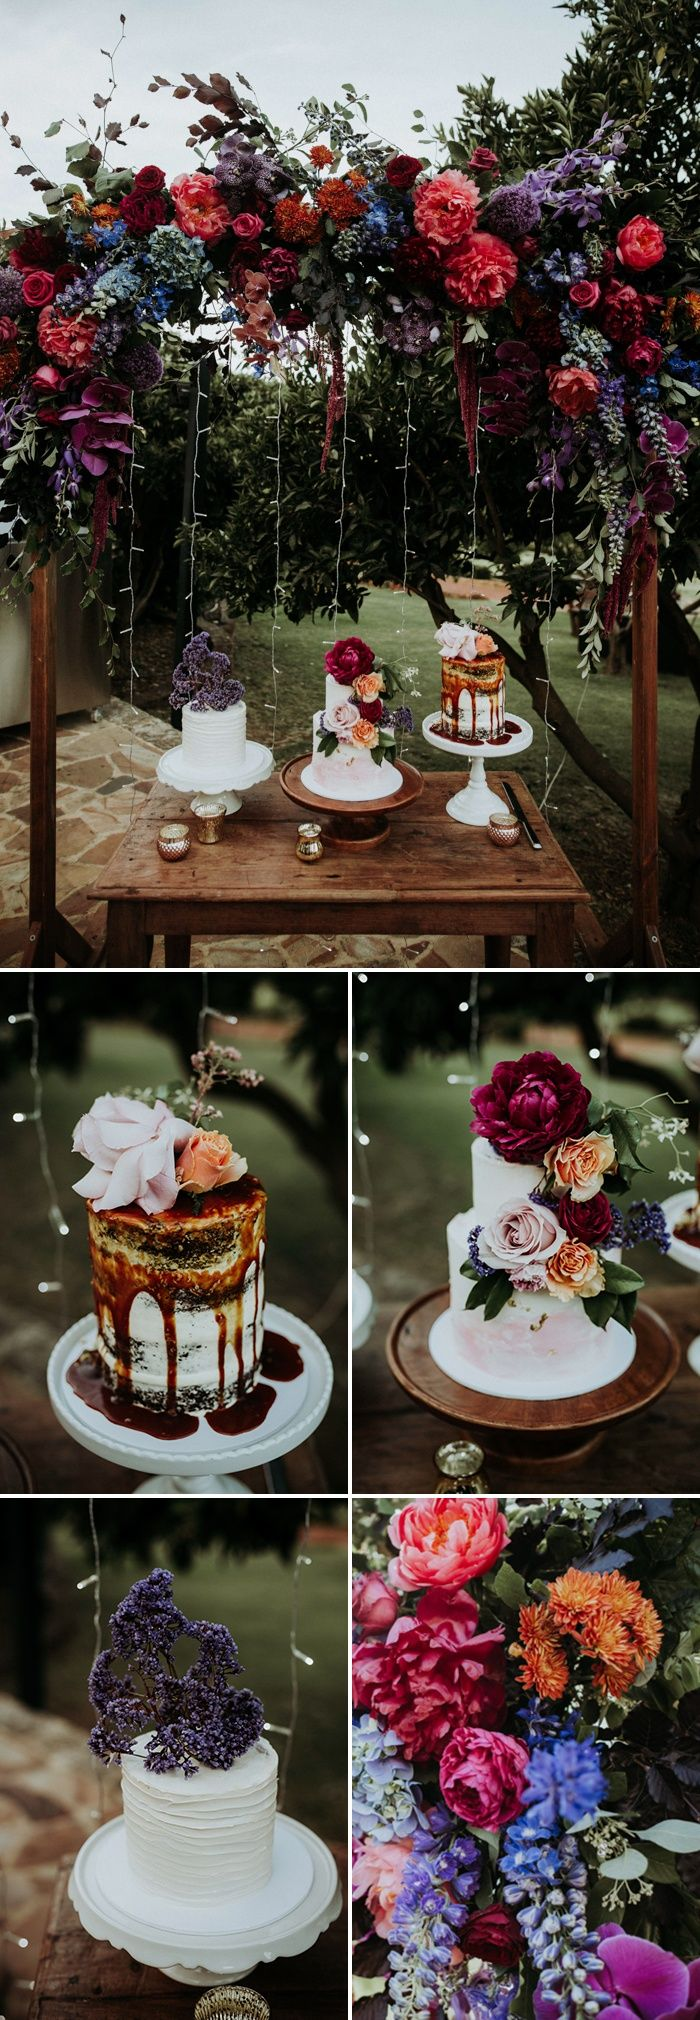 What a dream of a cake table | Image by Black Bird Tale -multiple small cakes in various styles vs 1 all the same large cake